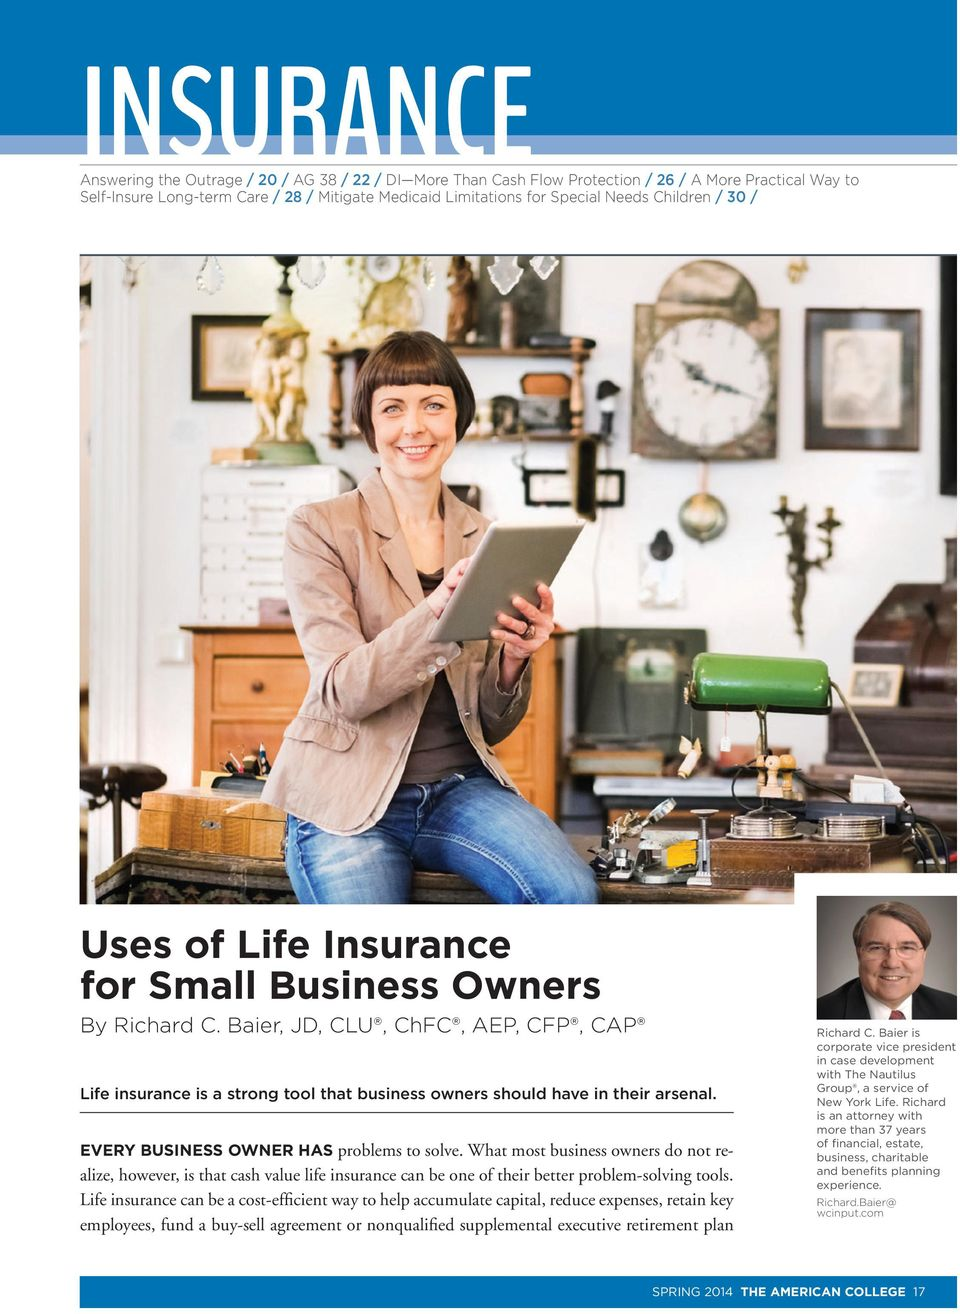 EVERY BUSINESS OWNER HAS problems to solve. What most business owners do not realize, however, is that cash value life insurance can be one of their better problem-solving tools.